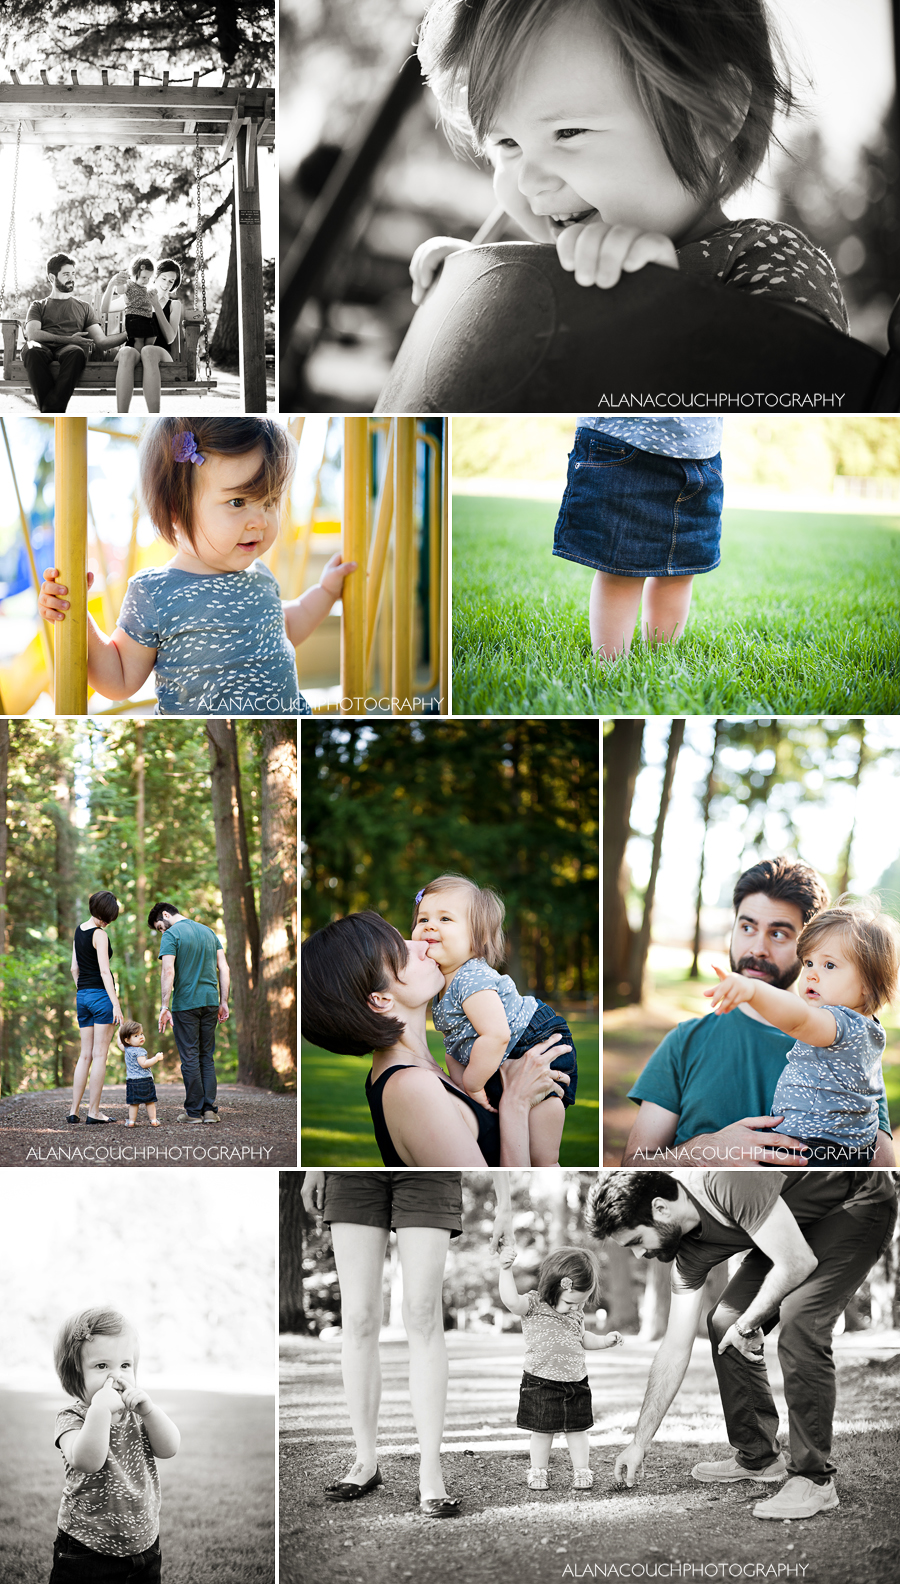 toddler-first-birthday-one-year-photography-session-alana-couch